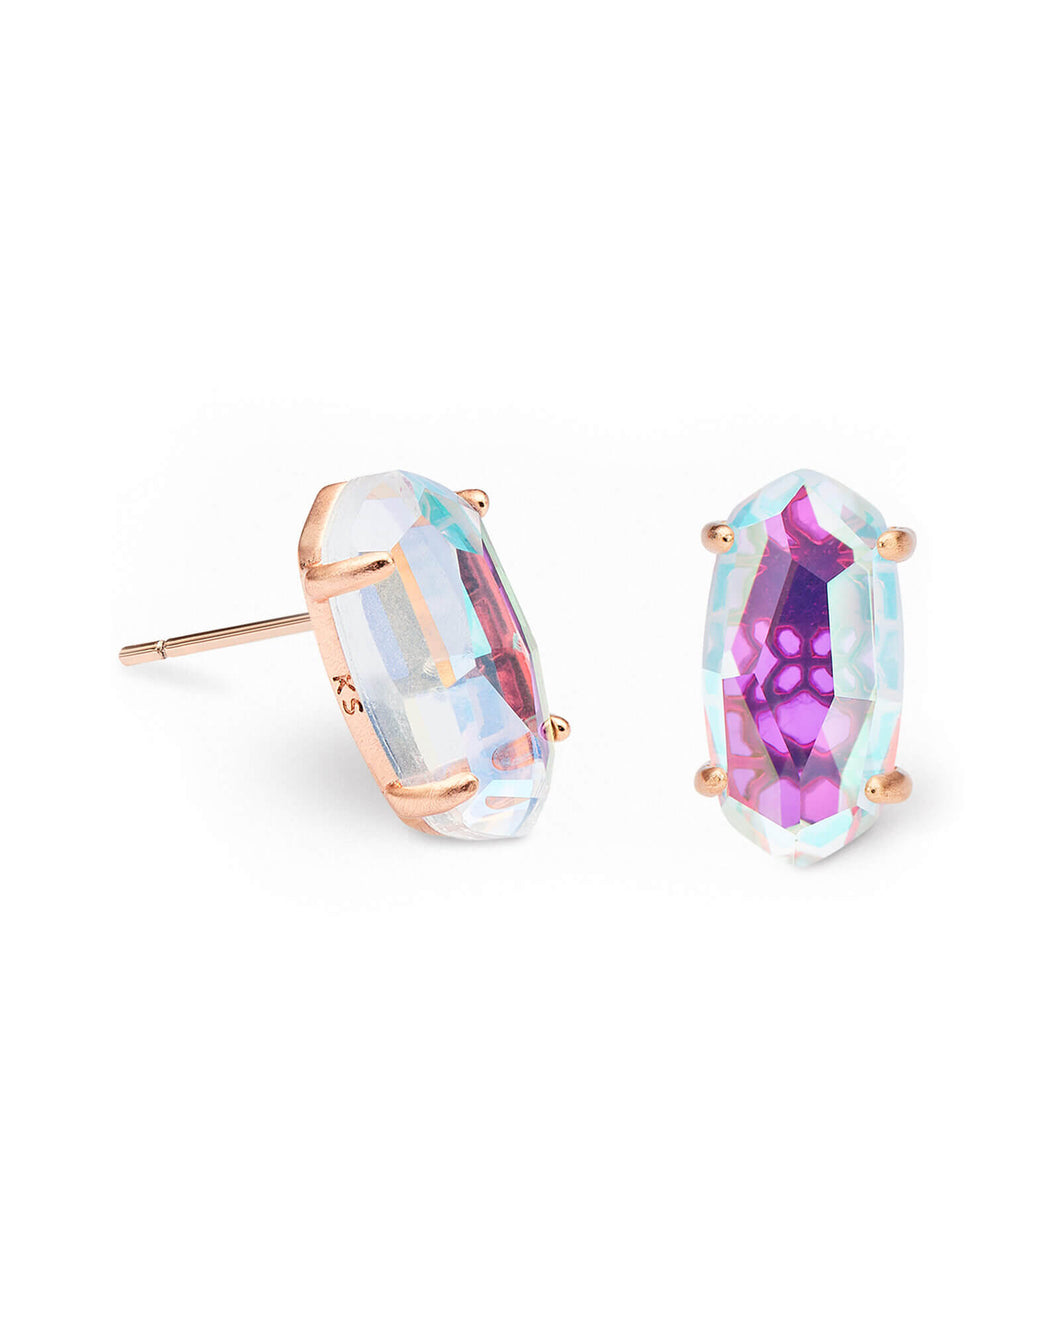 BETTY EARRING RSG BLUSH DICHROIC GLASS